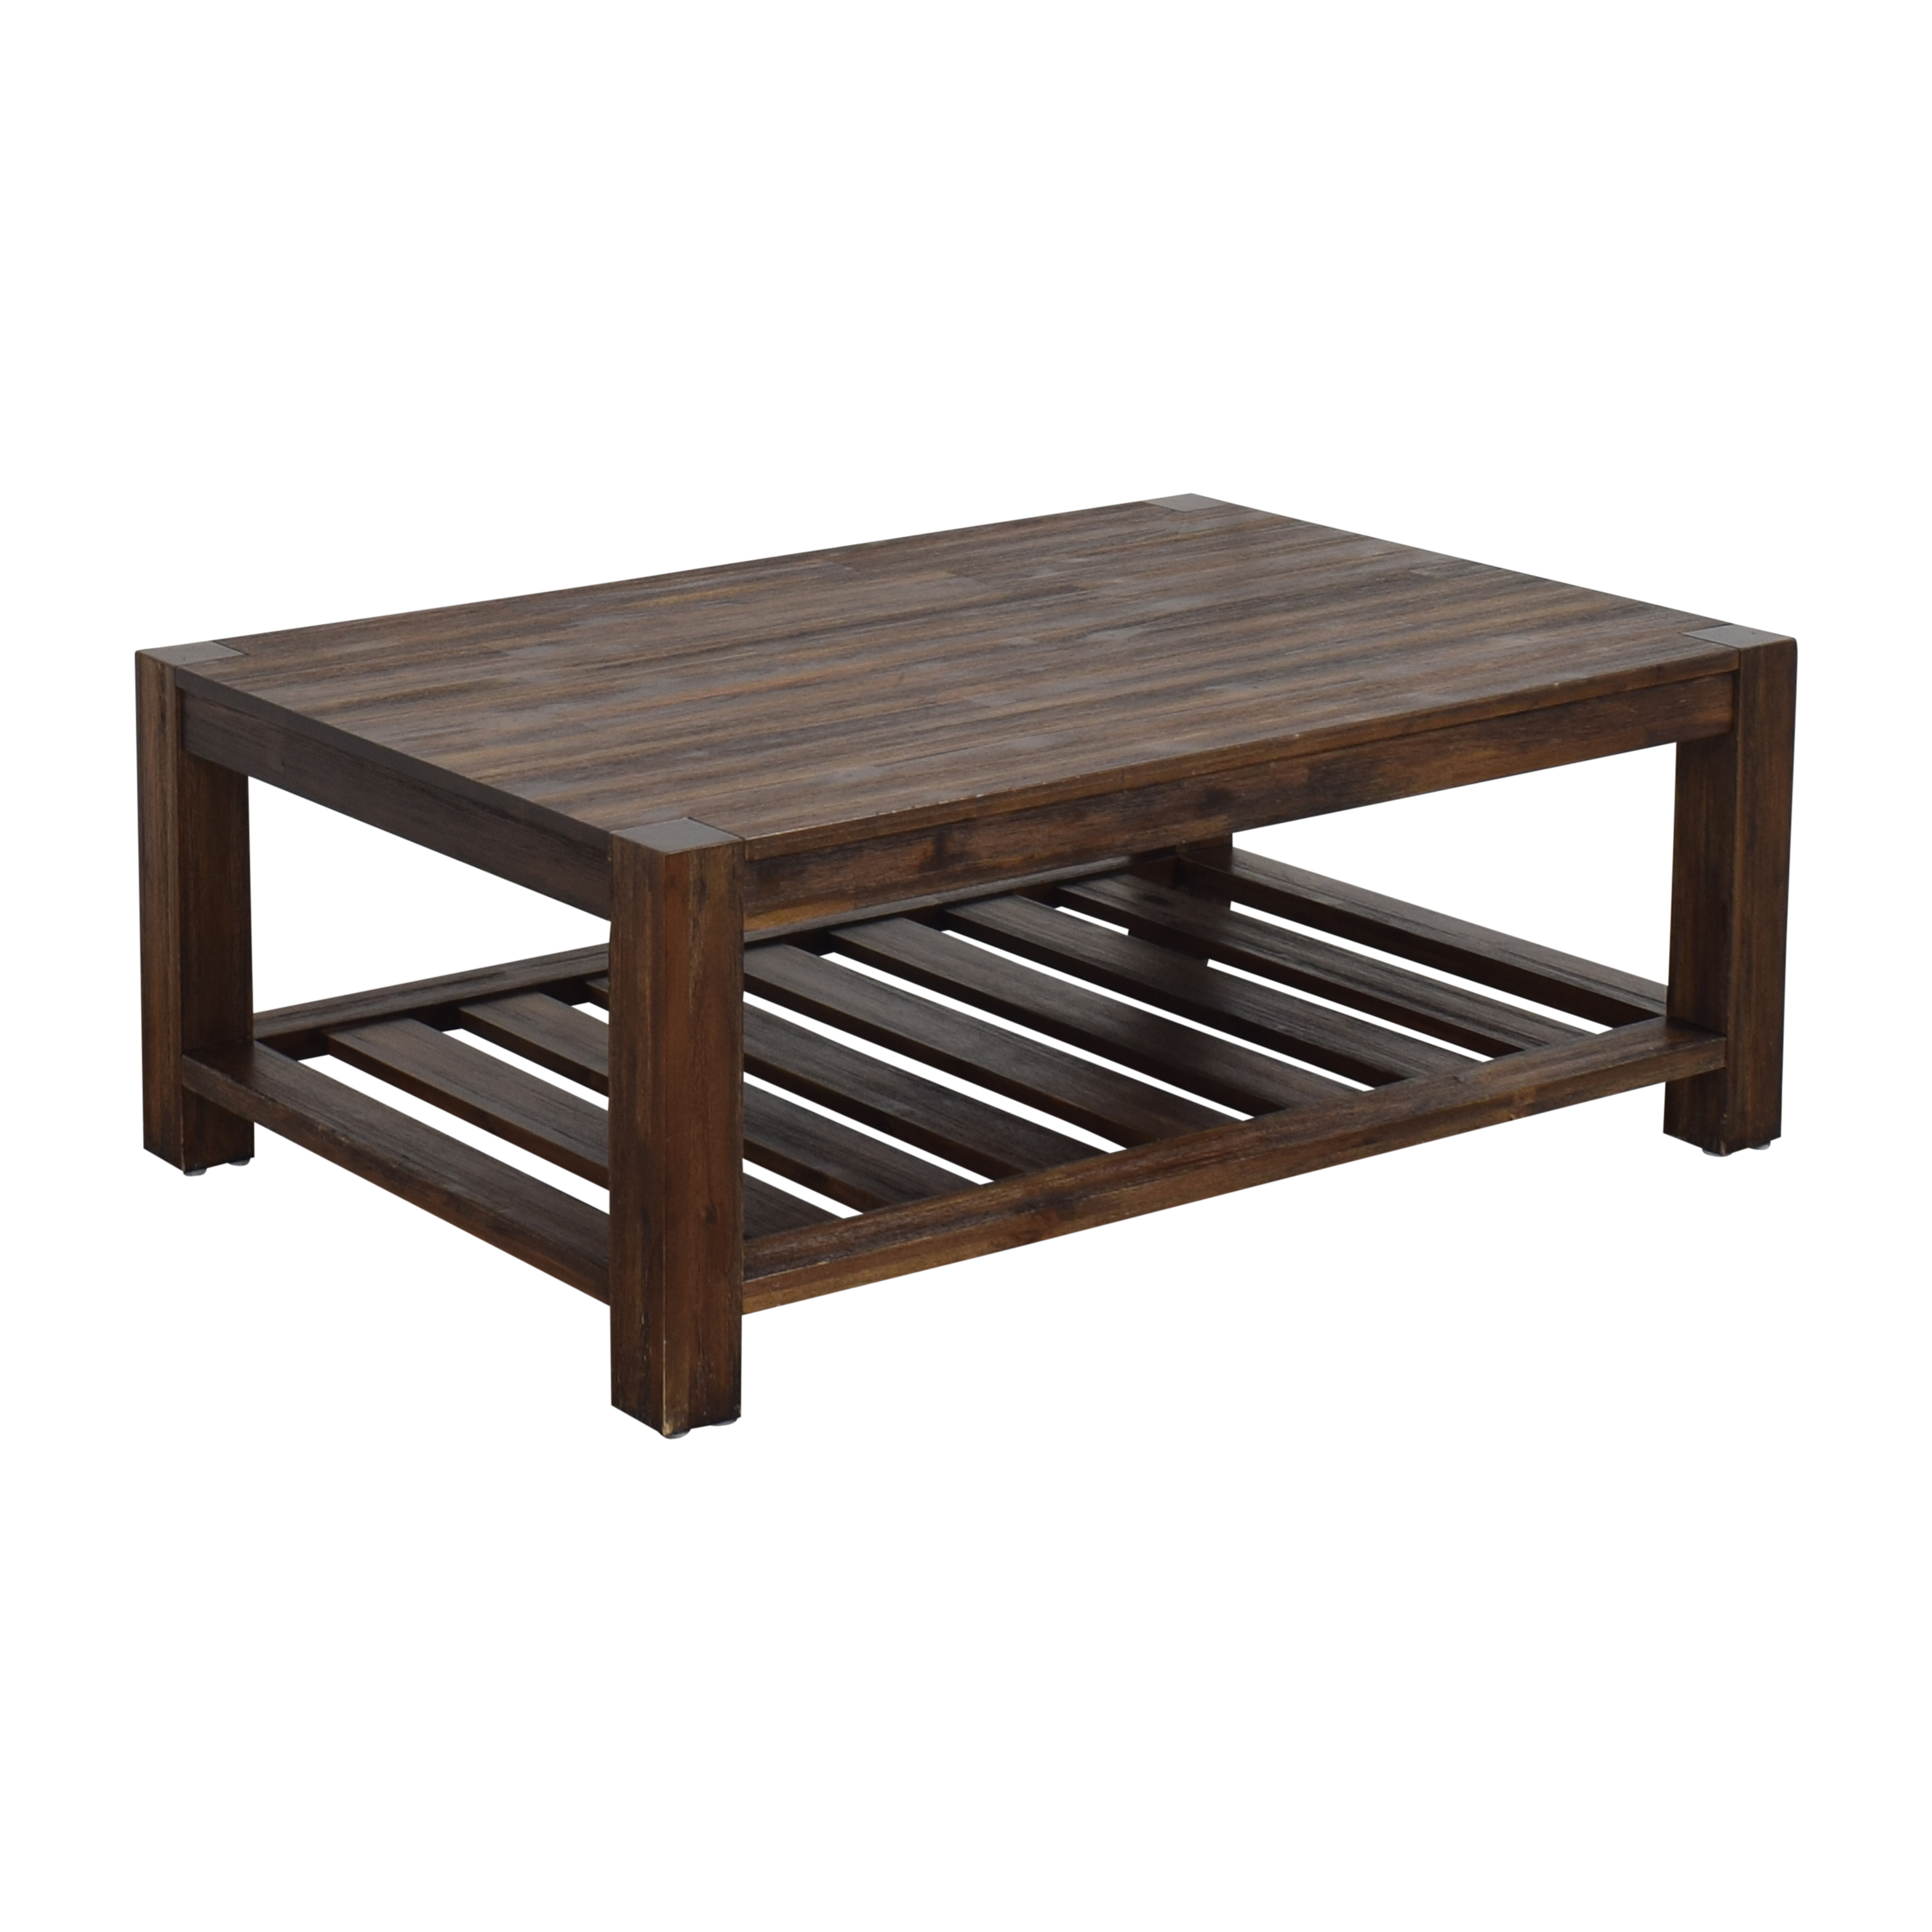 Macy's Macy's Avondale Coffee Table dimensions